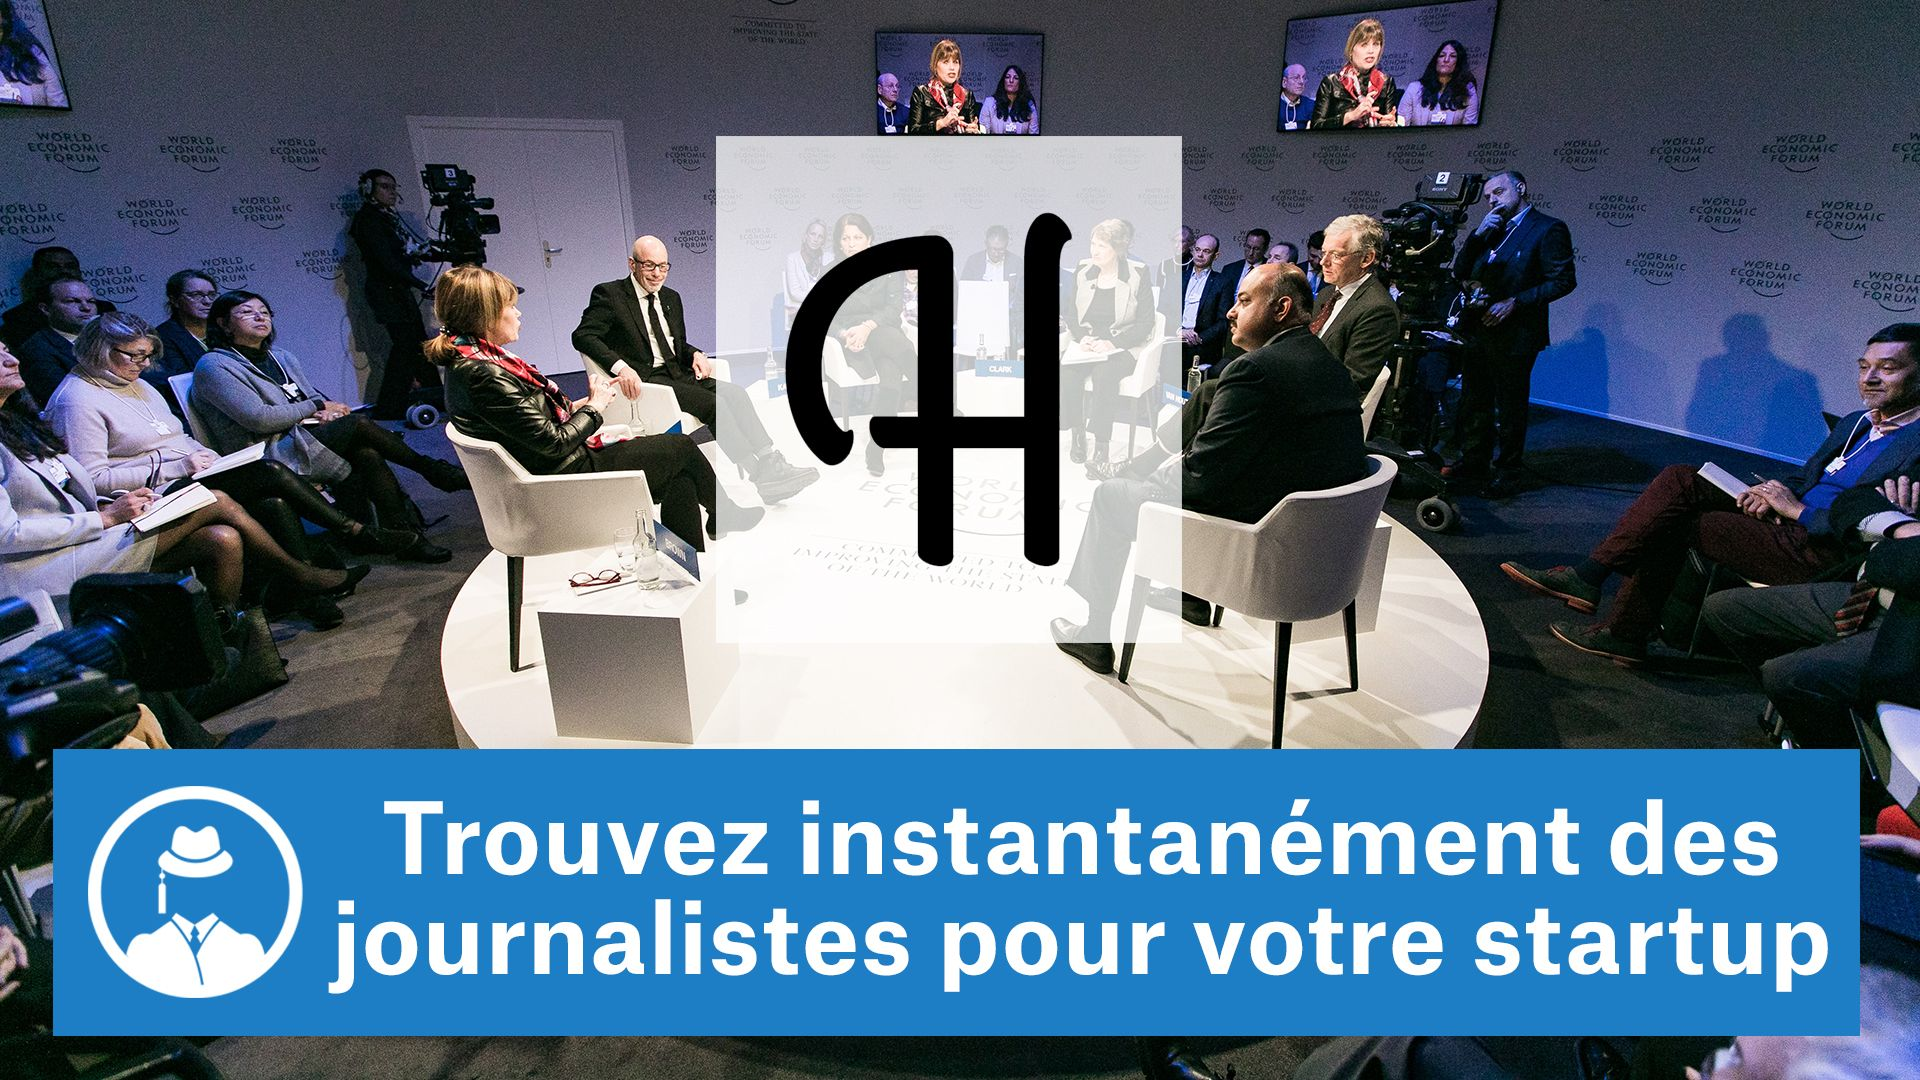 Trouver instantanément des journalistes pour sa startup #GrowthHacking #WebMarketing #FormationGrowthHacking #CentreDeFormationFrance #TunnelAARRR #AARRR #SocialMedia #CommunityManagement #SEO #HeyPress #SiteWeb